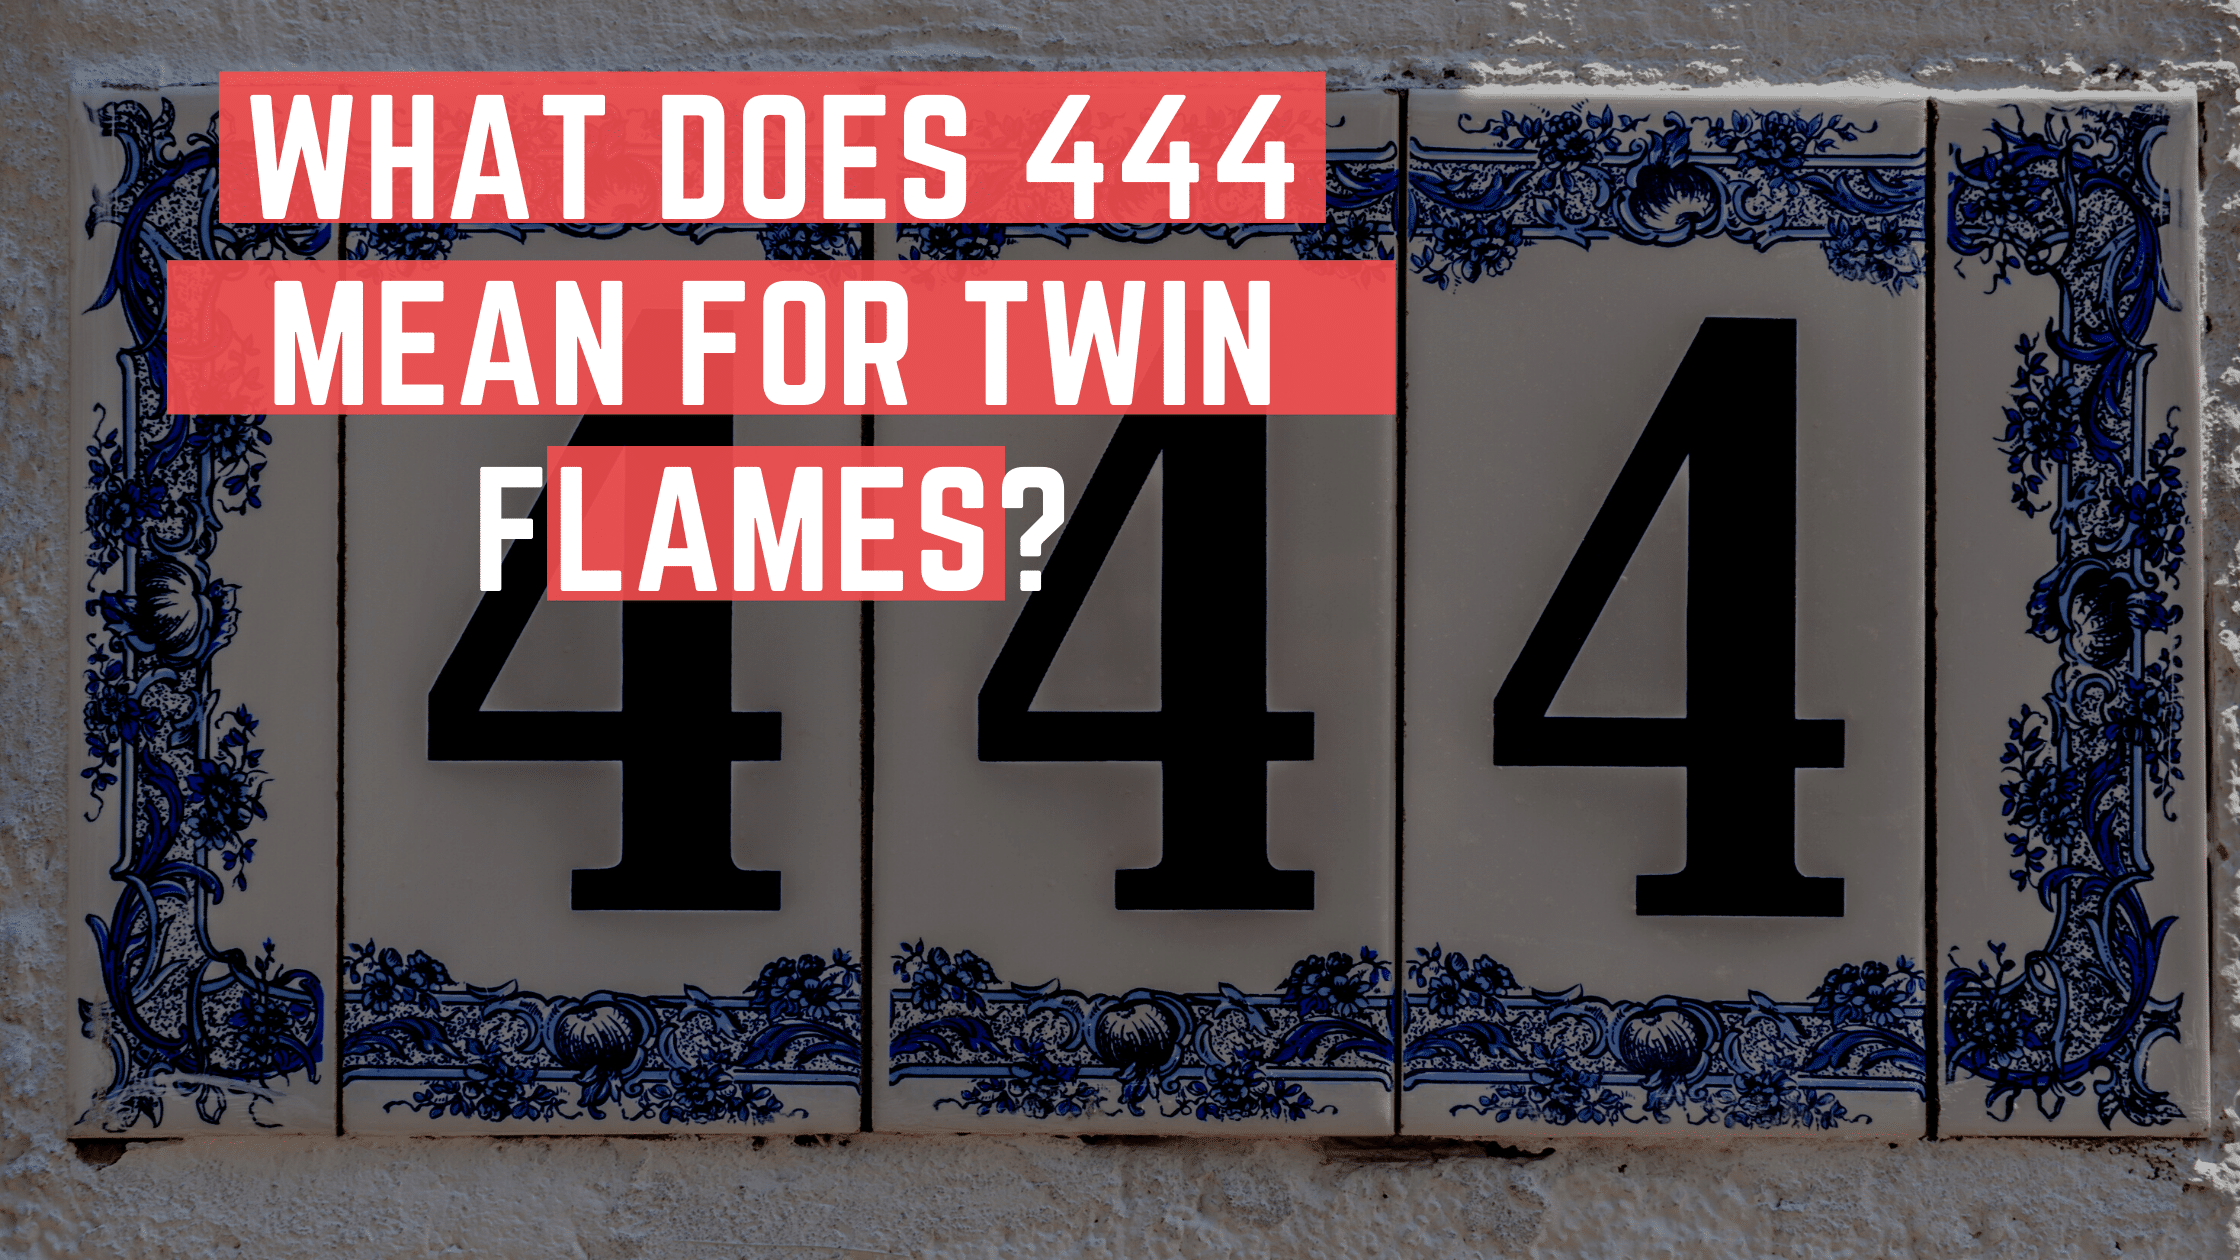 what does 444 mean twin flames